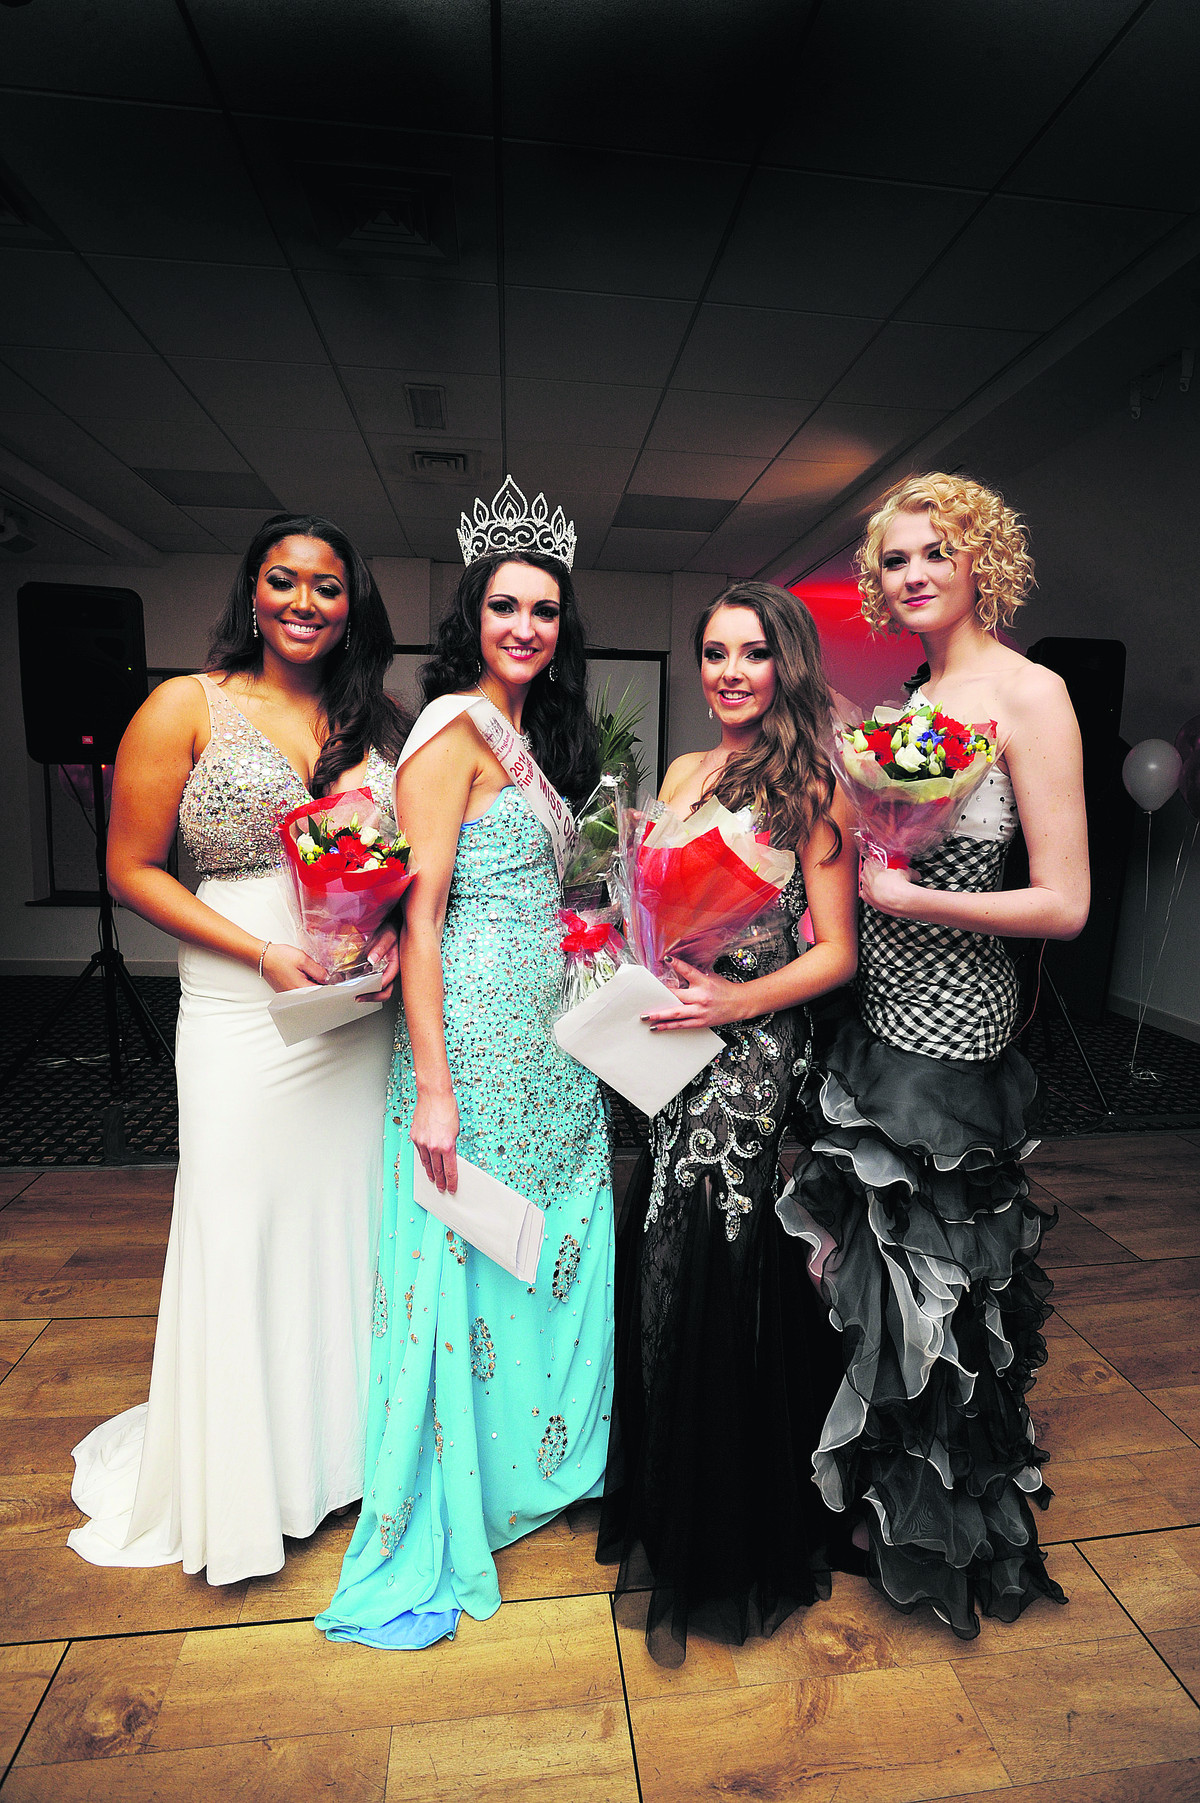 On parade, from left, Shirin Olivia, who won the popularity award, Amelia Watt, who won the charity award and the title, and runners-up Hannah Everett and Lucy Treadwell